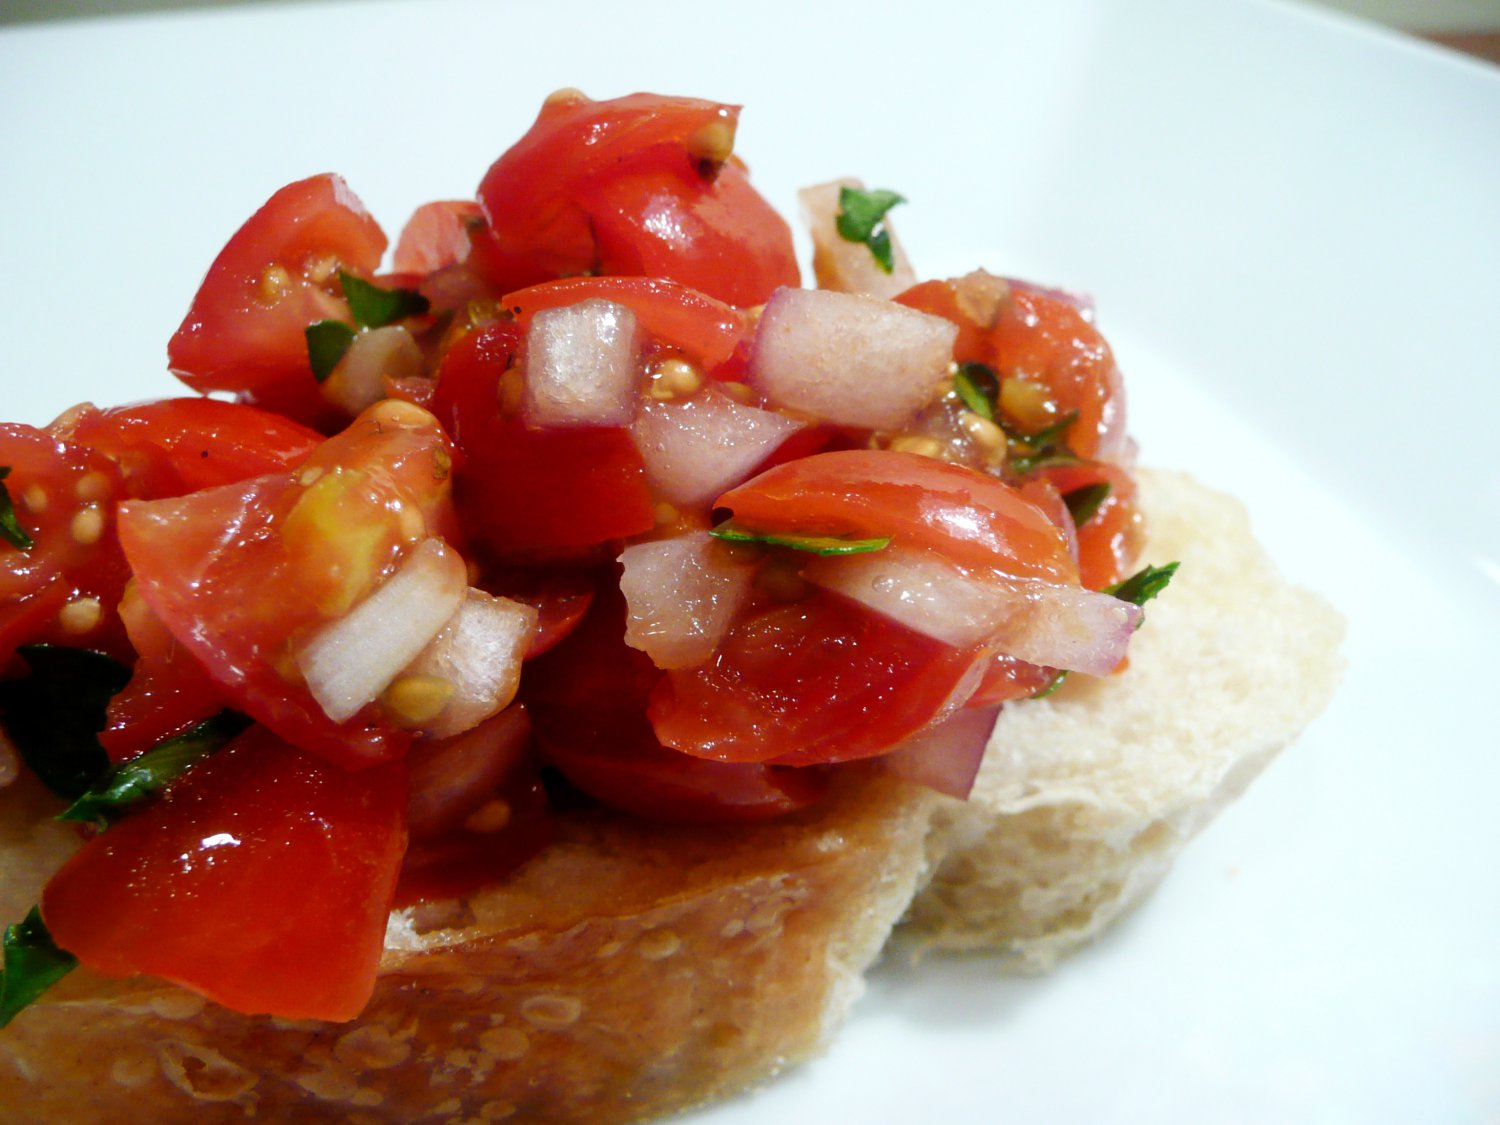 Bruschetta w/Apple or Balsamic Vinaigrette